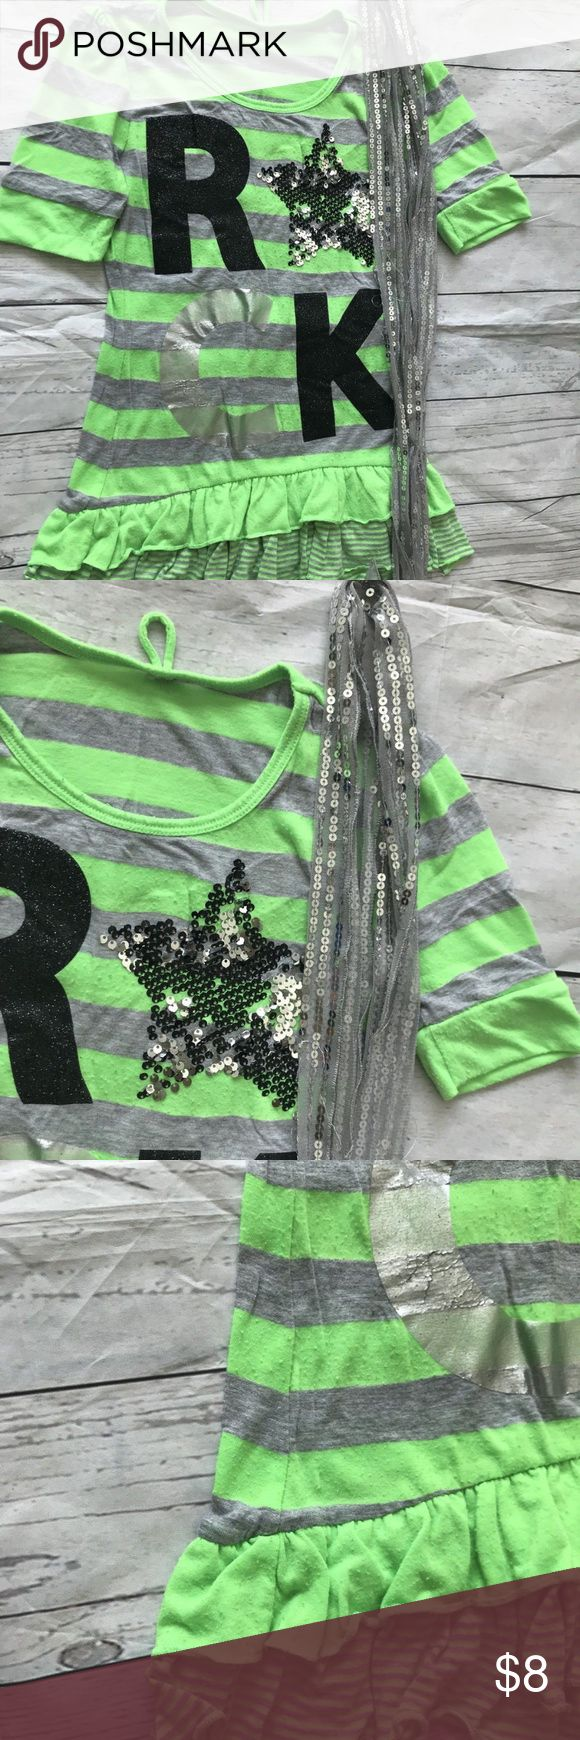 Girls Lime Green & Grey Top Size Kids M J10151706 Girls Lime Green & Grey Top Size Kids M Some Wear On The Letters Comes With A Silver Scarf Pre-Owned In Great Condition J10151706 Shirts & Tops Tees - Short Sleeve